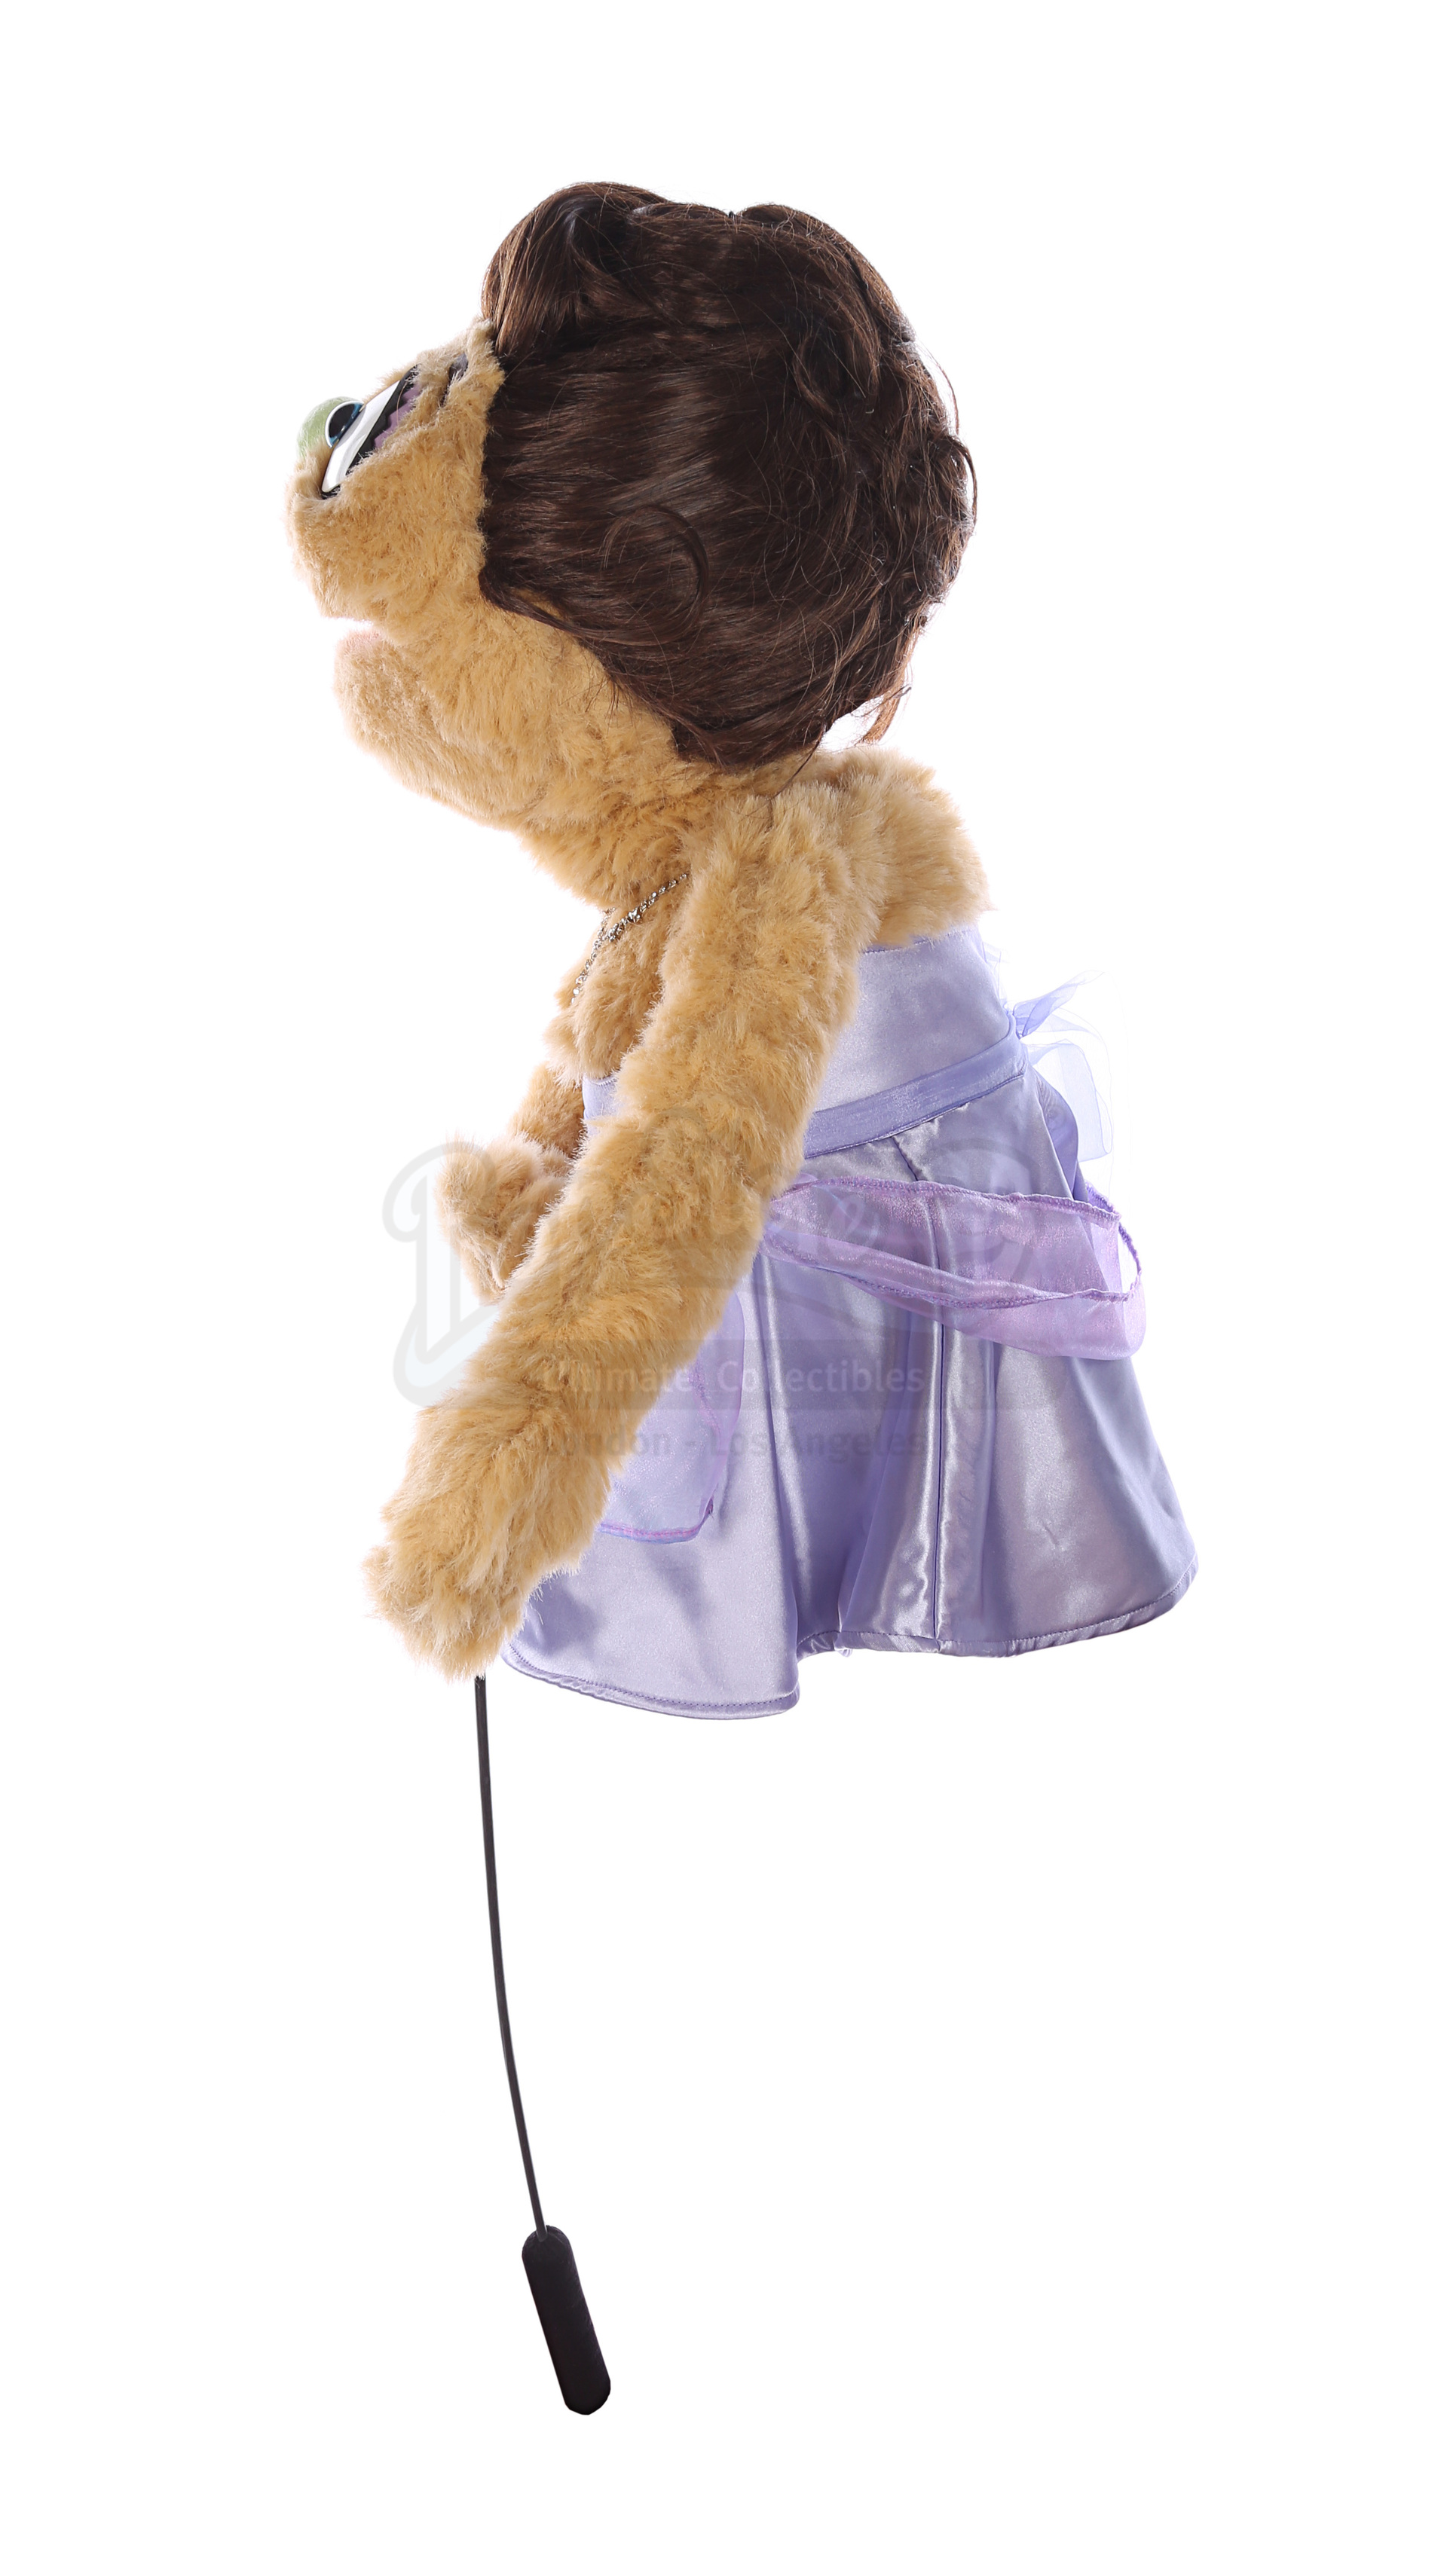 AVENUE Q (STAGE SHOW) - Wedding Puppet Collection: Kate Monster, Nicky, Princeton, Rod, Kate Monster - Image 4 of 23